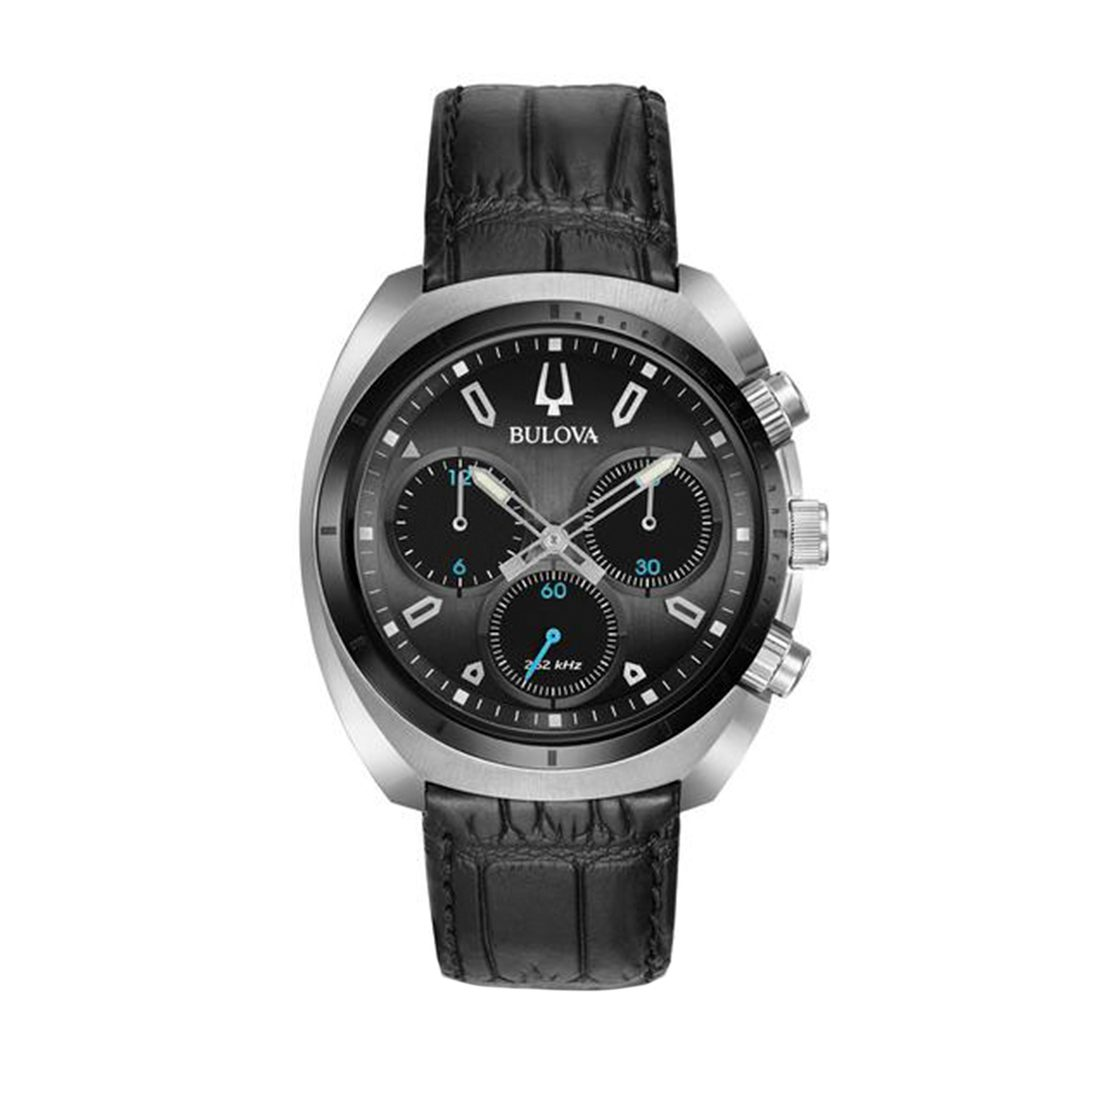 Men's Bulova chronograph watch, grey dial with blue accents and black leather strap